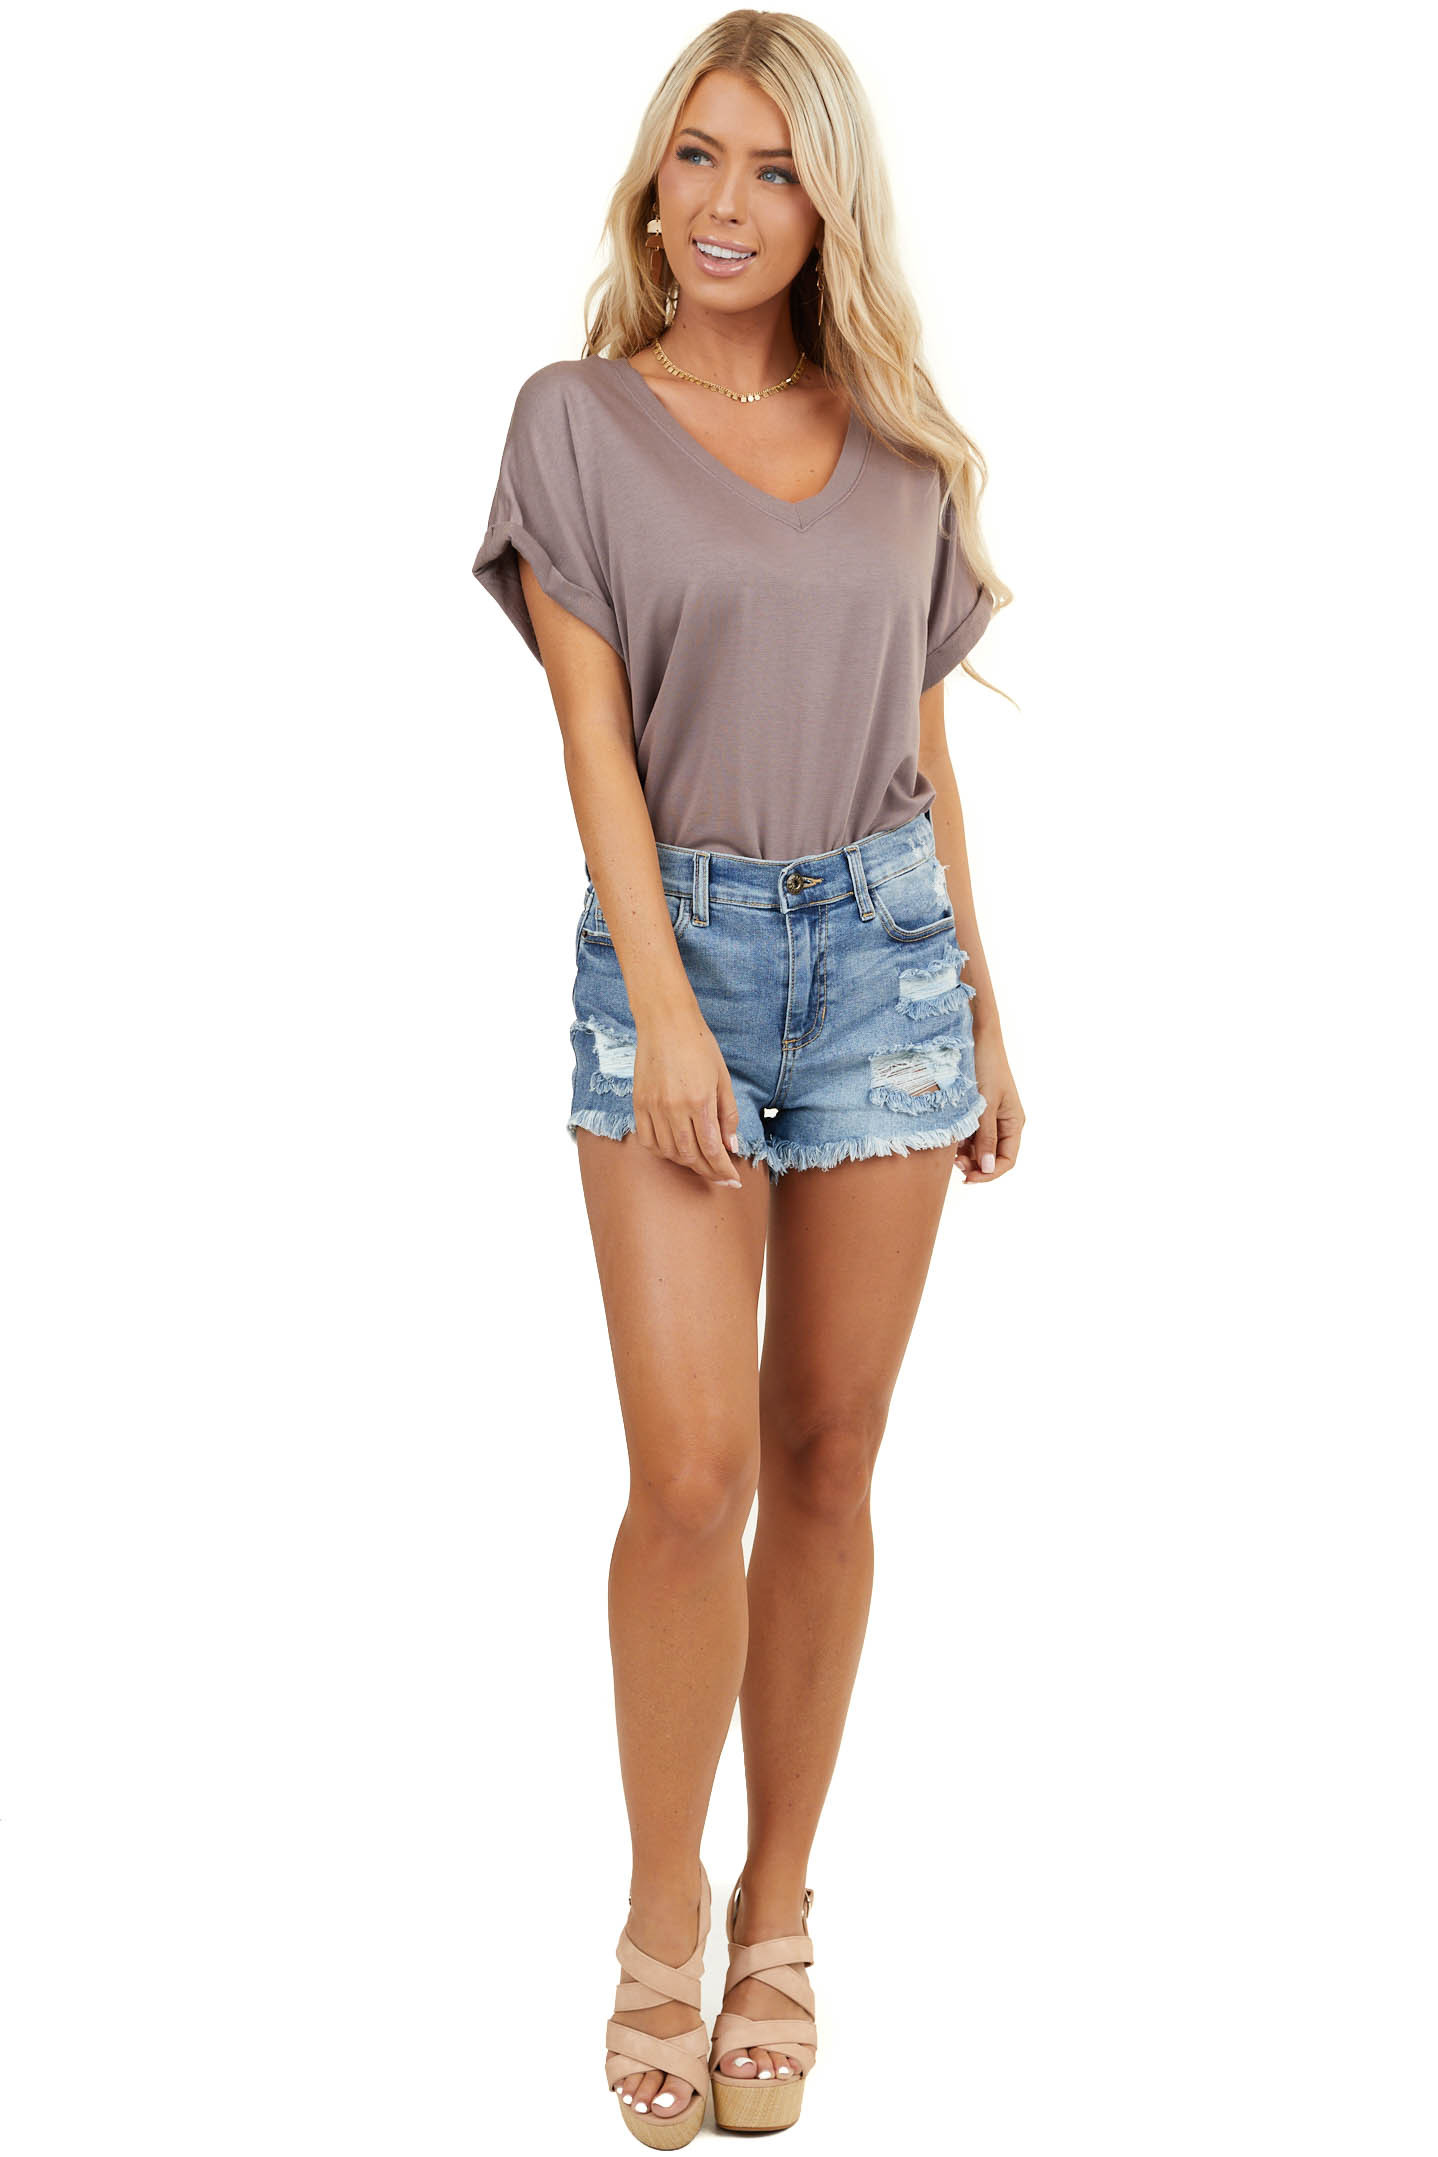 Dusty Lavender V Neck Bodysuit with Cuffed Short Sleeves